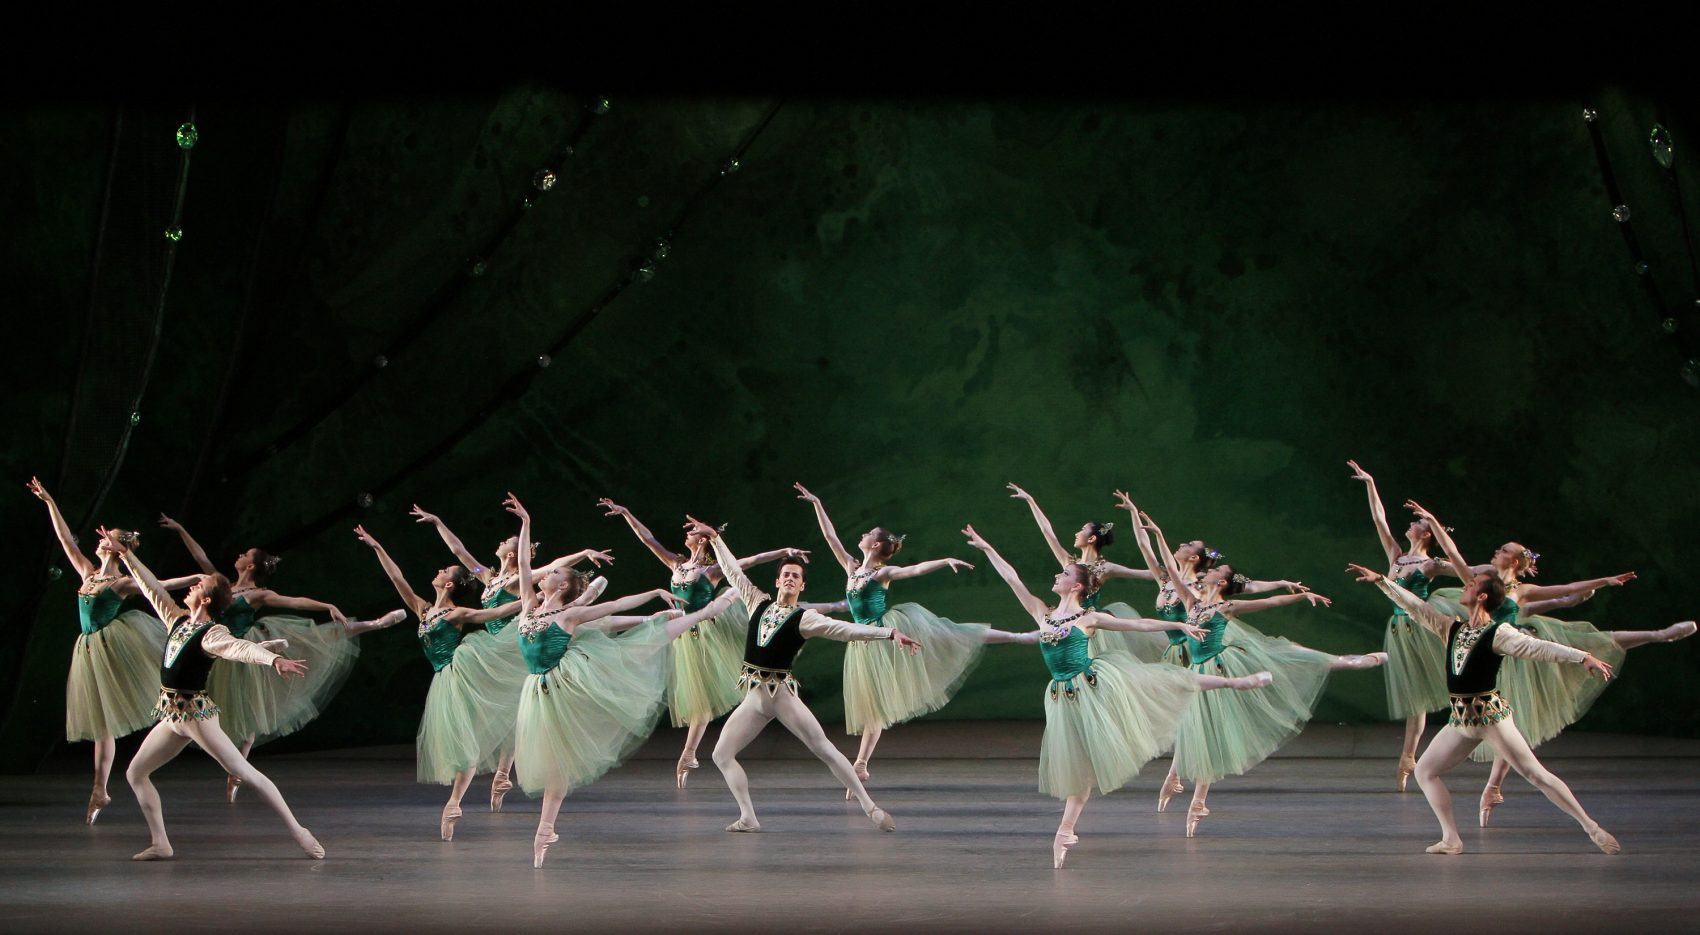 """New York City Ballet dancers Jonathan Stafford, Sara Mearns, Robert Fairchild, Abi Stafford, and Jared Angle in """"Emeralds"""" from """"Jewels."""" (Courtesy of  Paul Kolnik)"""